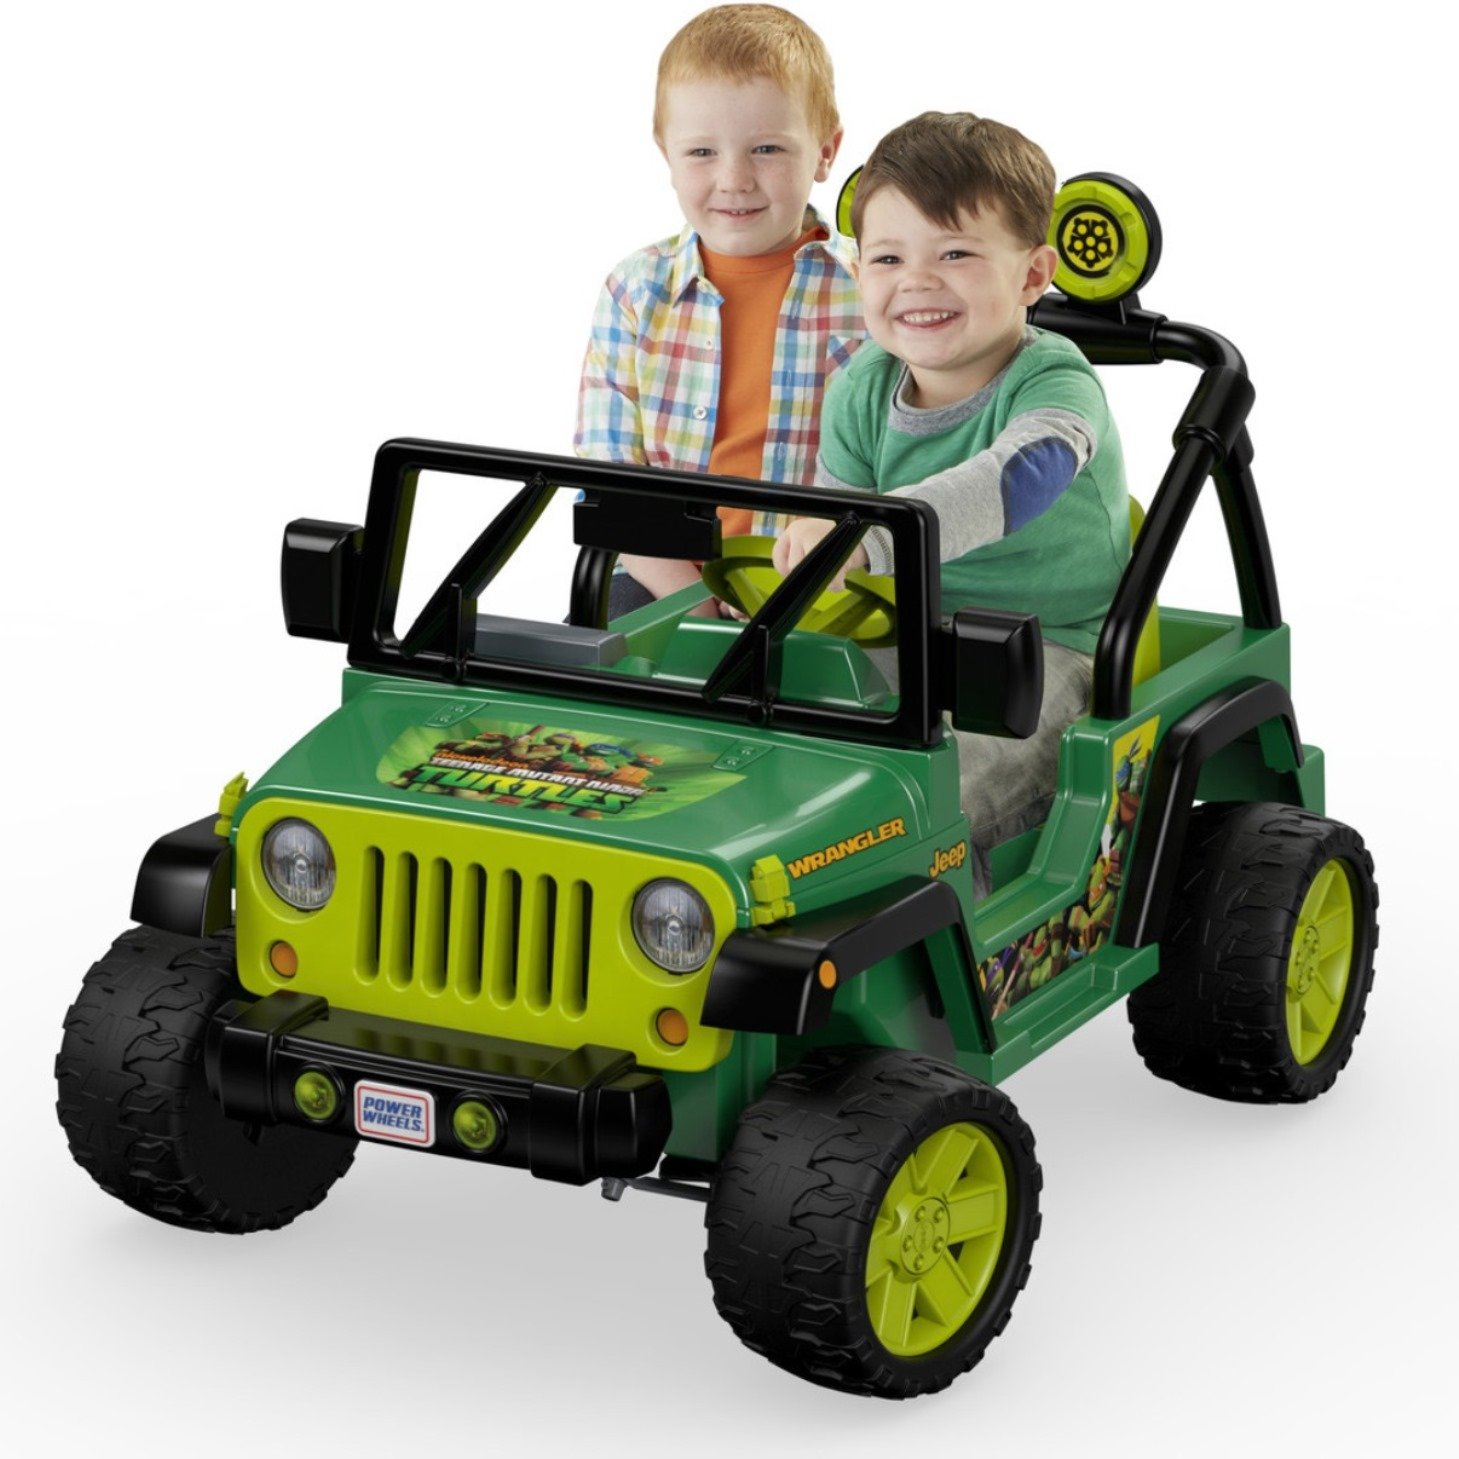 $227.01 (was $399.99) Fisher-Price Power Wheels Nickelodeon Teenage Mutant Ninja Turtles Jeep Wrangler